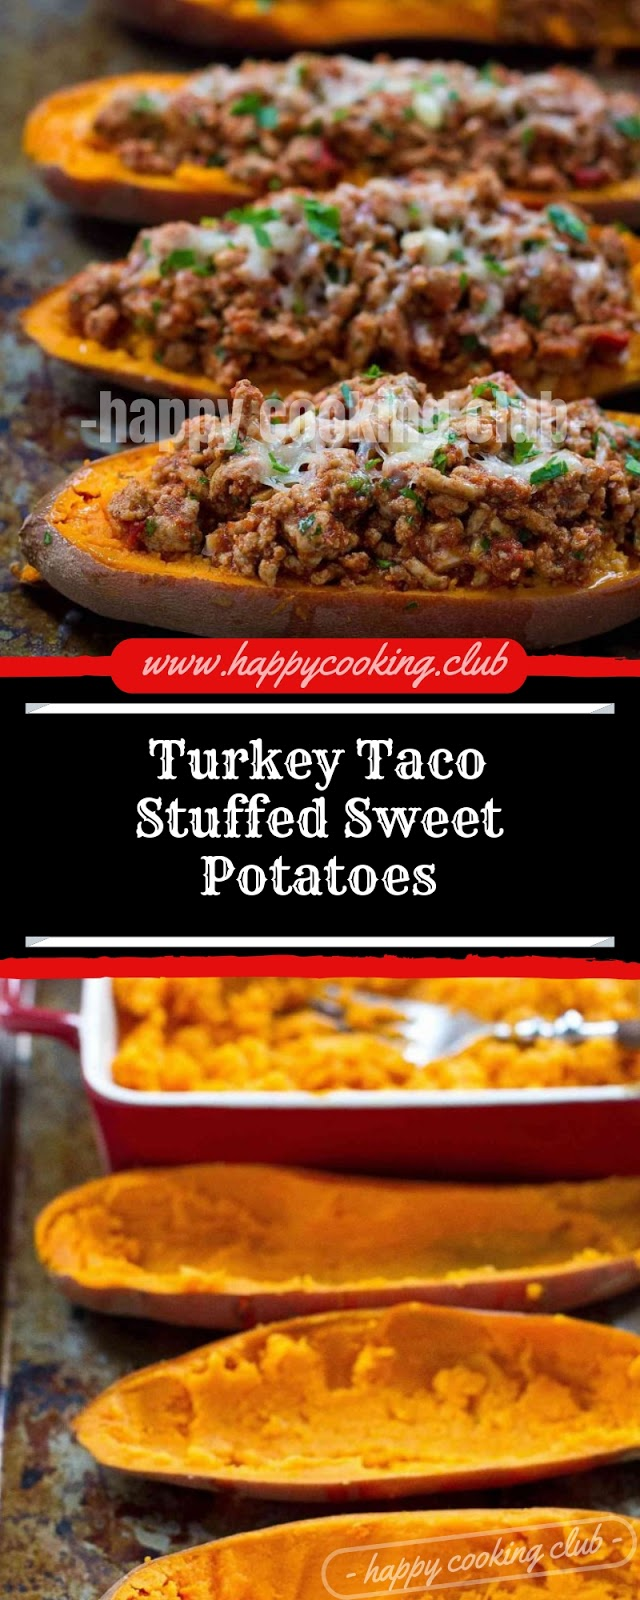 Turkey Taco Stuffed Sweet Potatoes